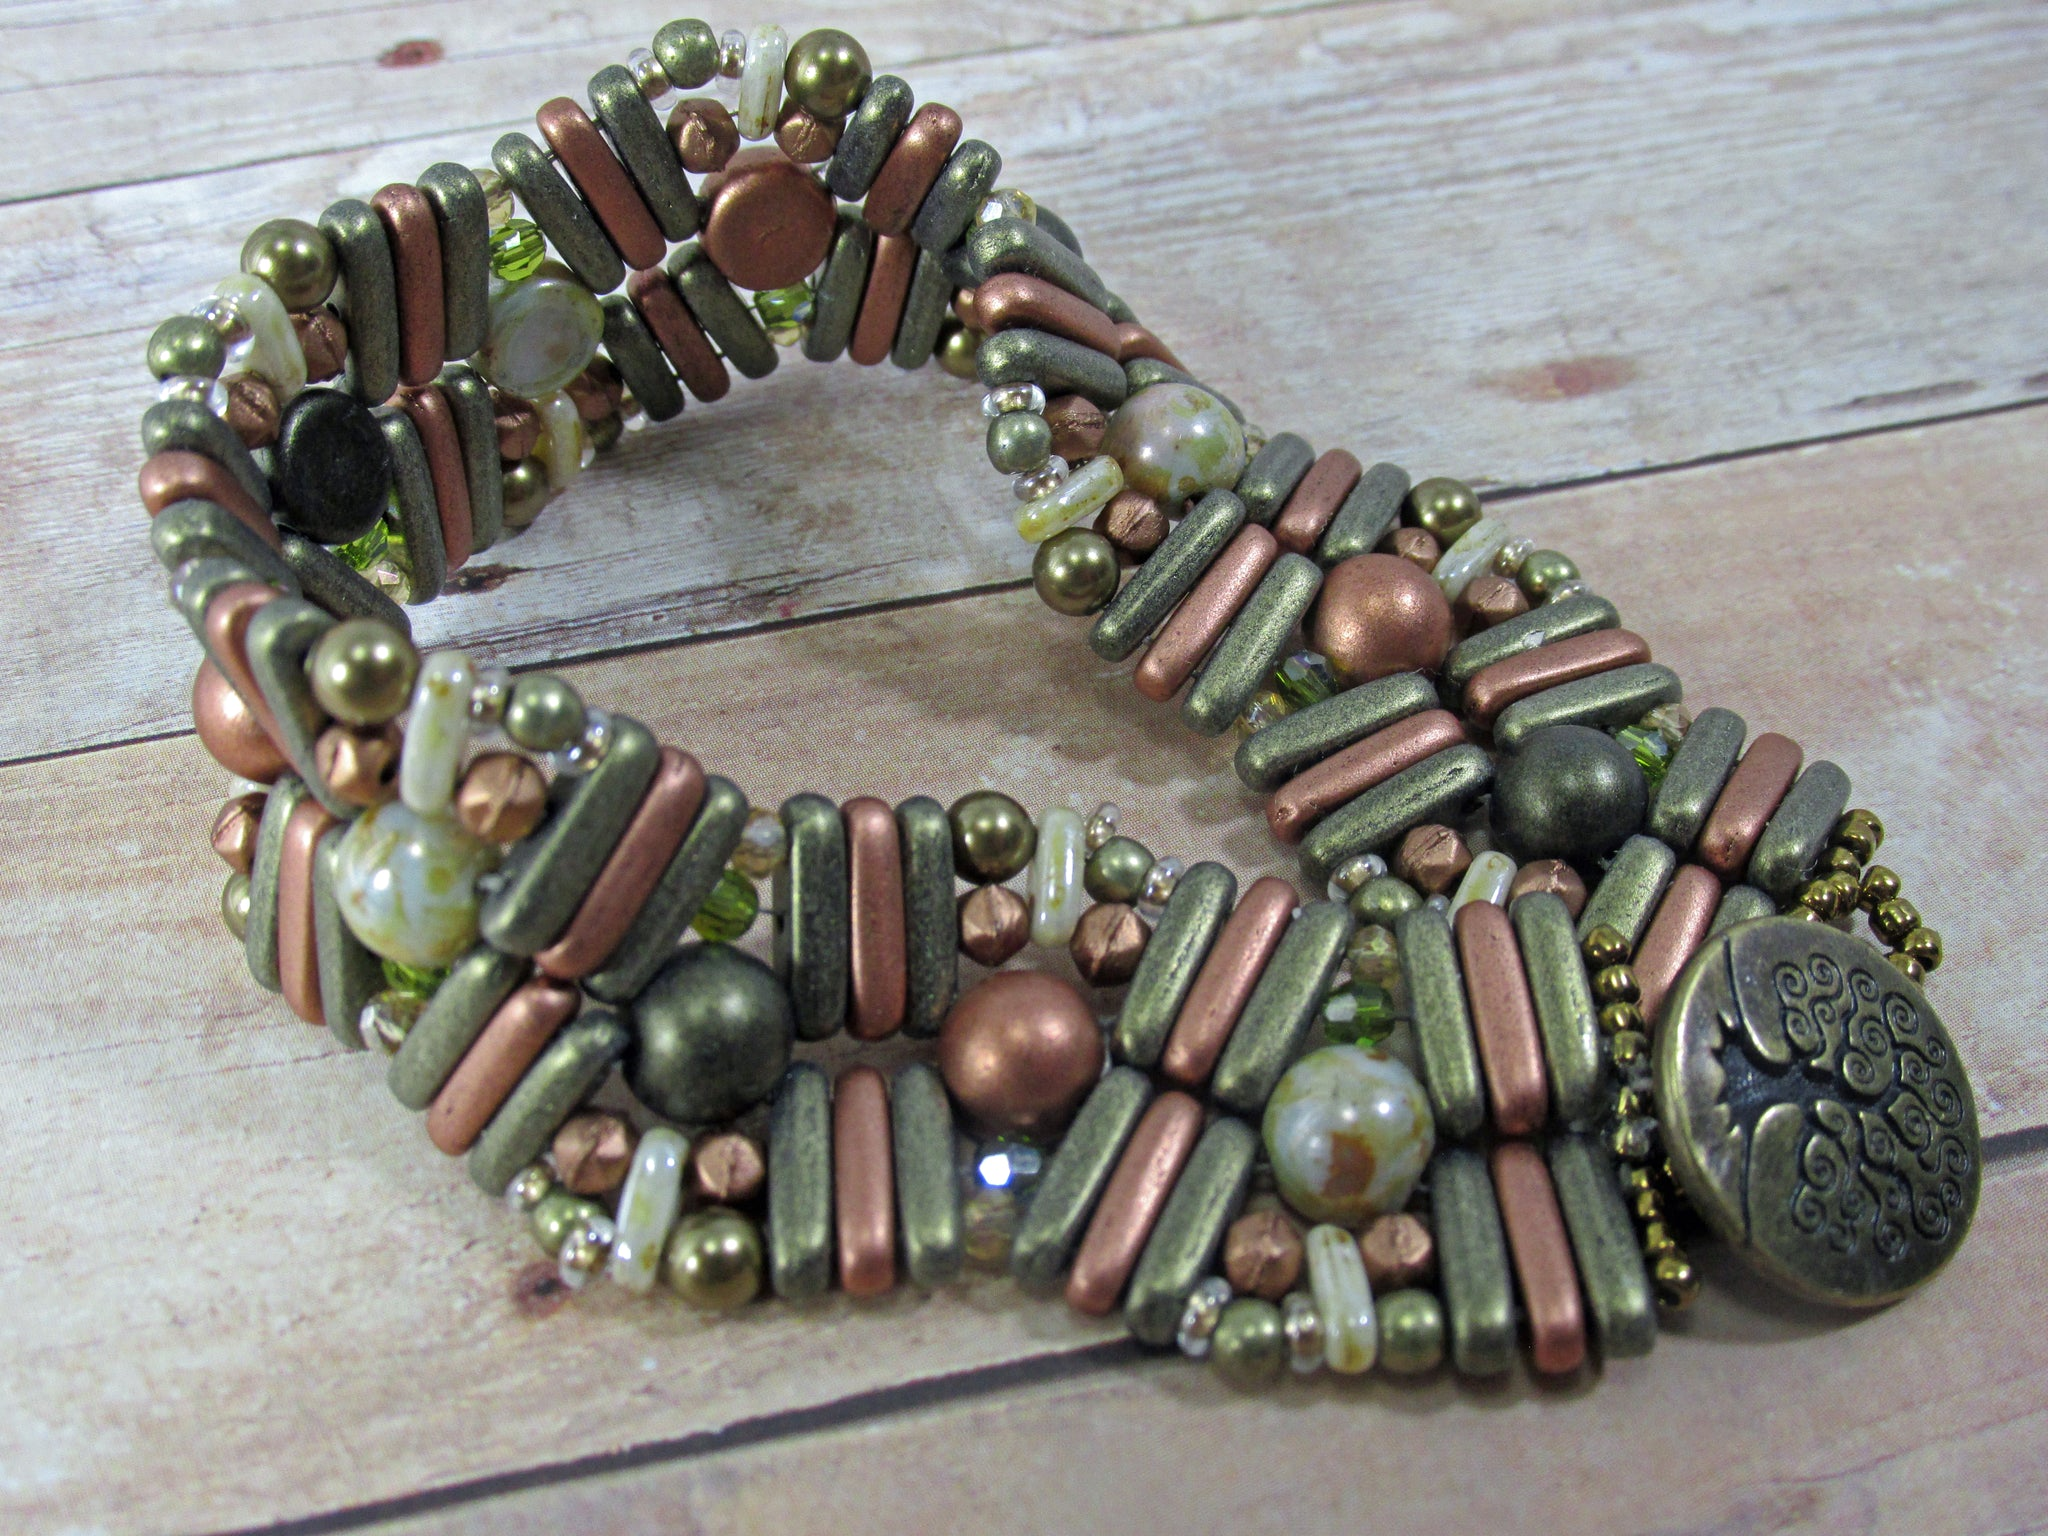 Kahki Green and Copper Earthtones Pebble Lane Beaded Bracelet with Tree of Life Toggle Clasp - Odyssey Creations